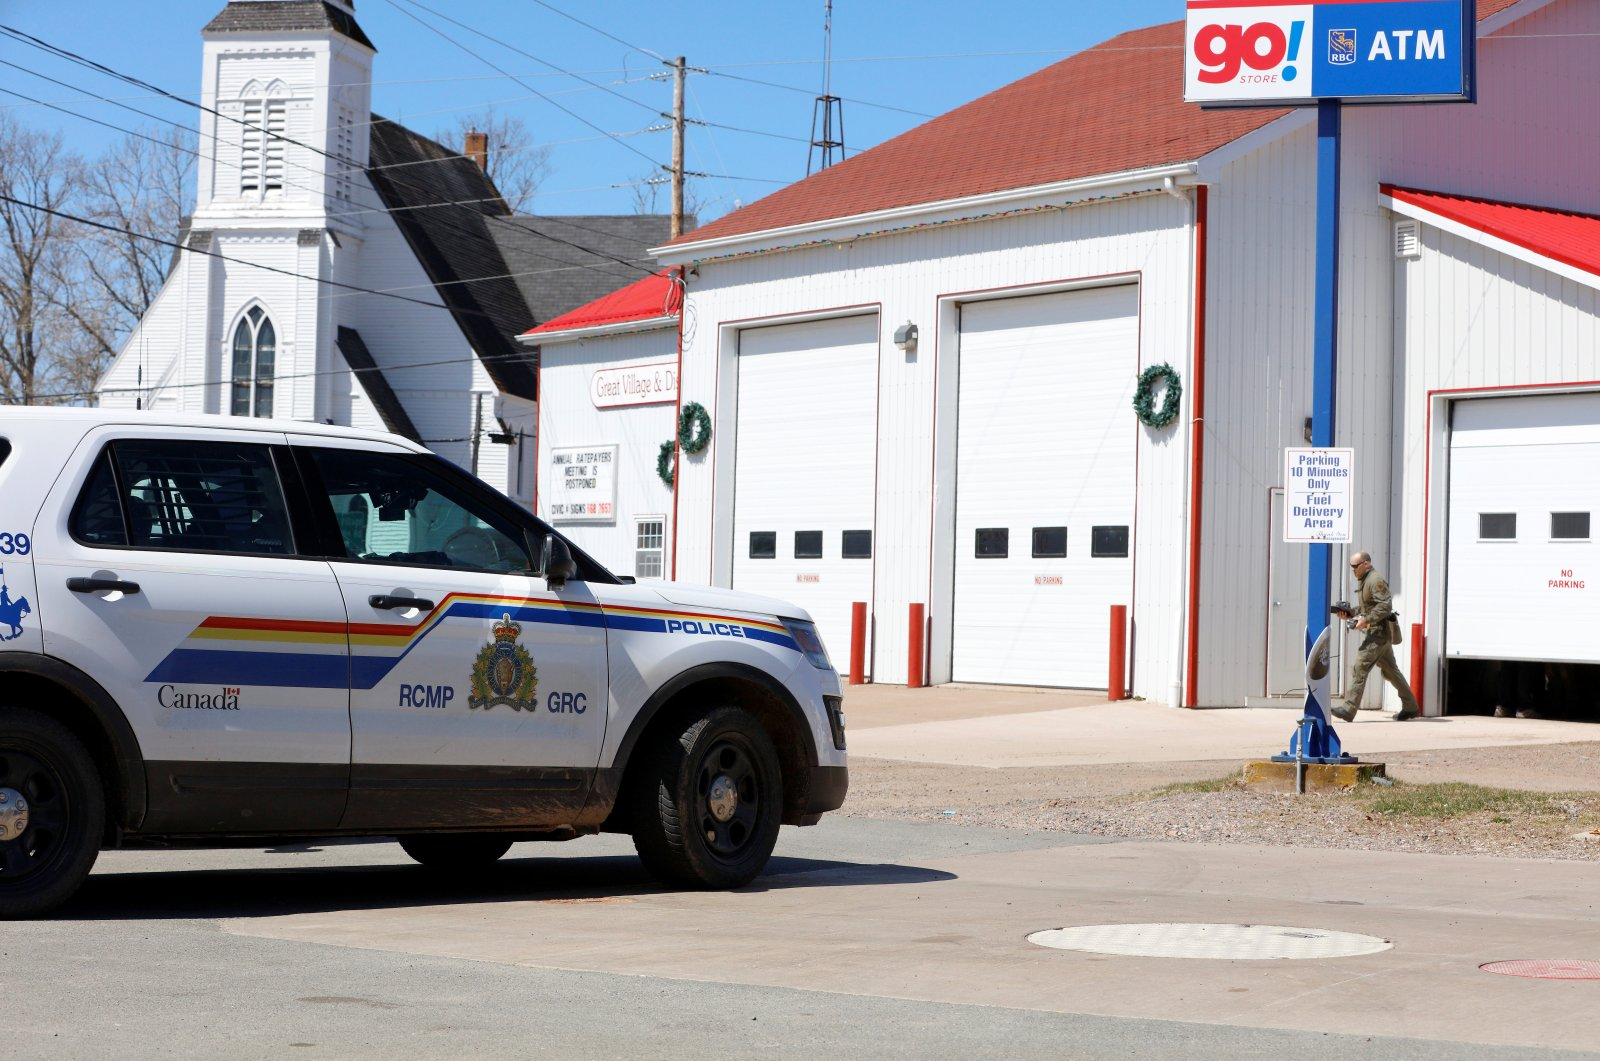 A Royal Canadian Mounted Police (RCMP) member walks out of the Great Village command post after searching for Gabriel Wortman, who they describe as a shooter of multiple victims, in Great Village, Nova Scotia, Canada, April 19, 2020. (Reuters Photo)